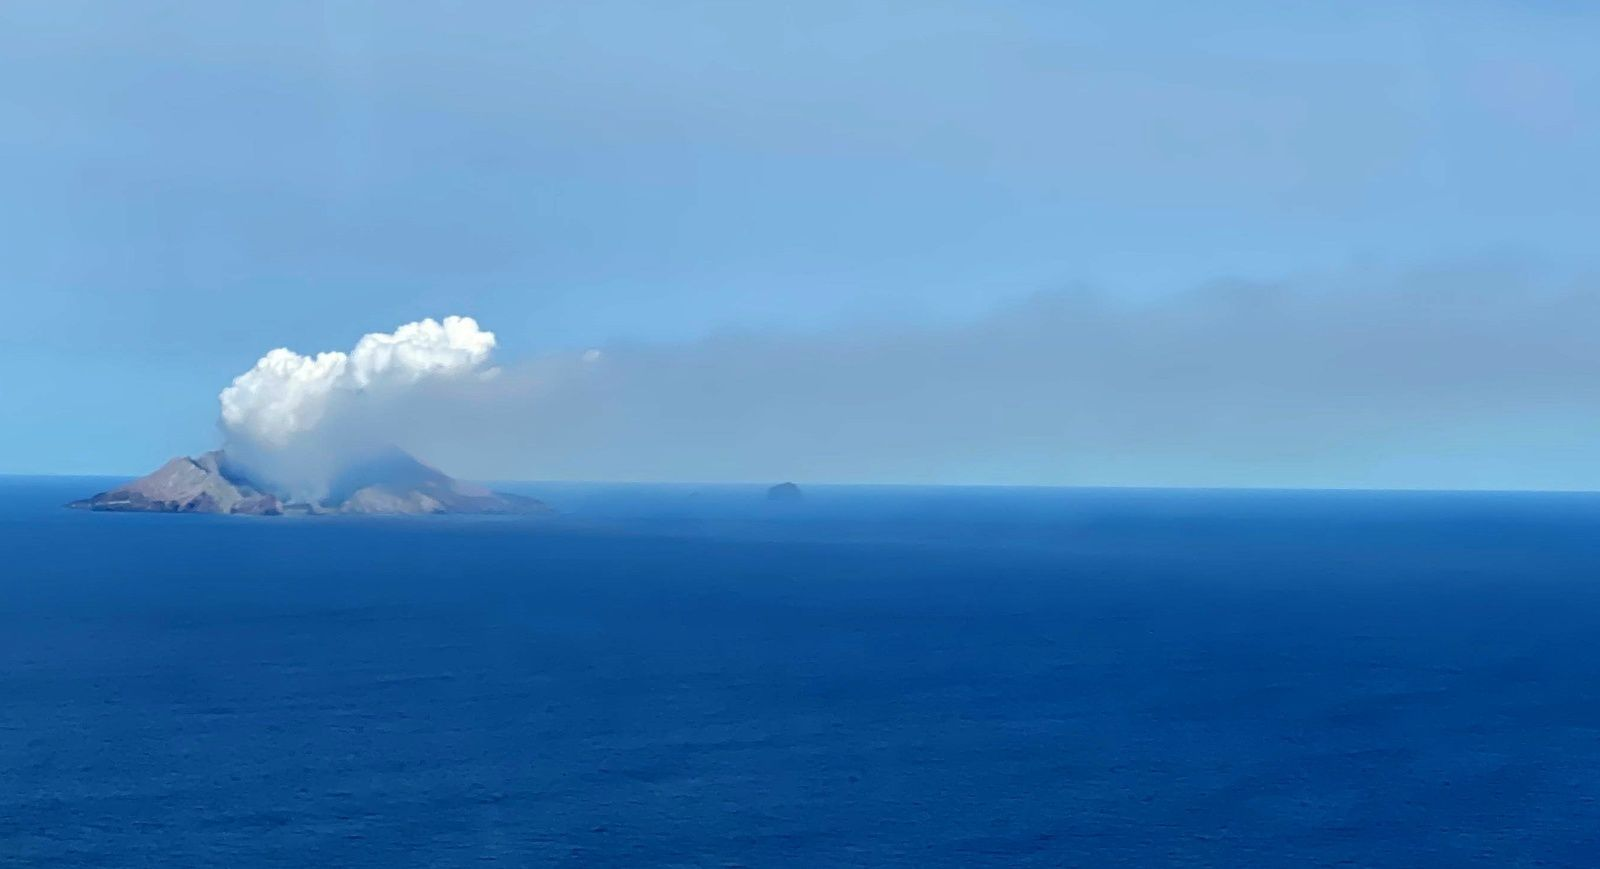 Whakaari / White Island - The volcano and its plume of gas and vapor on 15.12.2019 - photo GeoNet